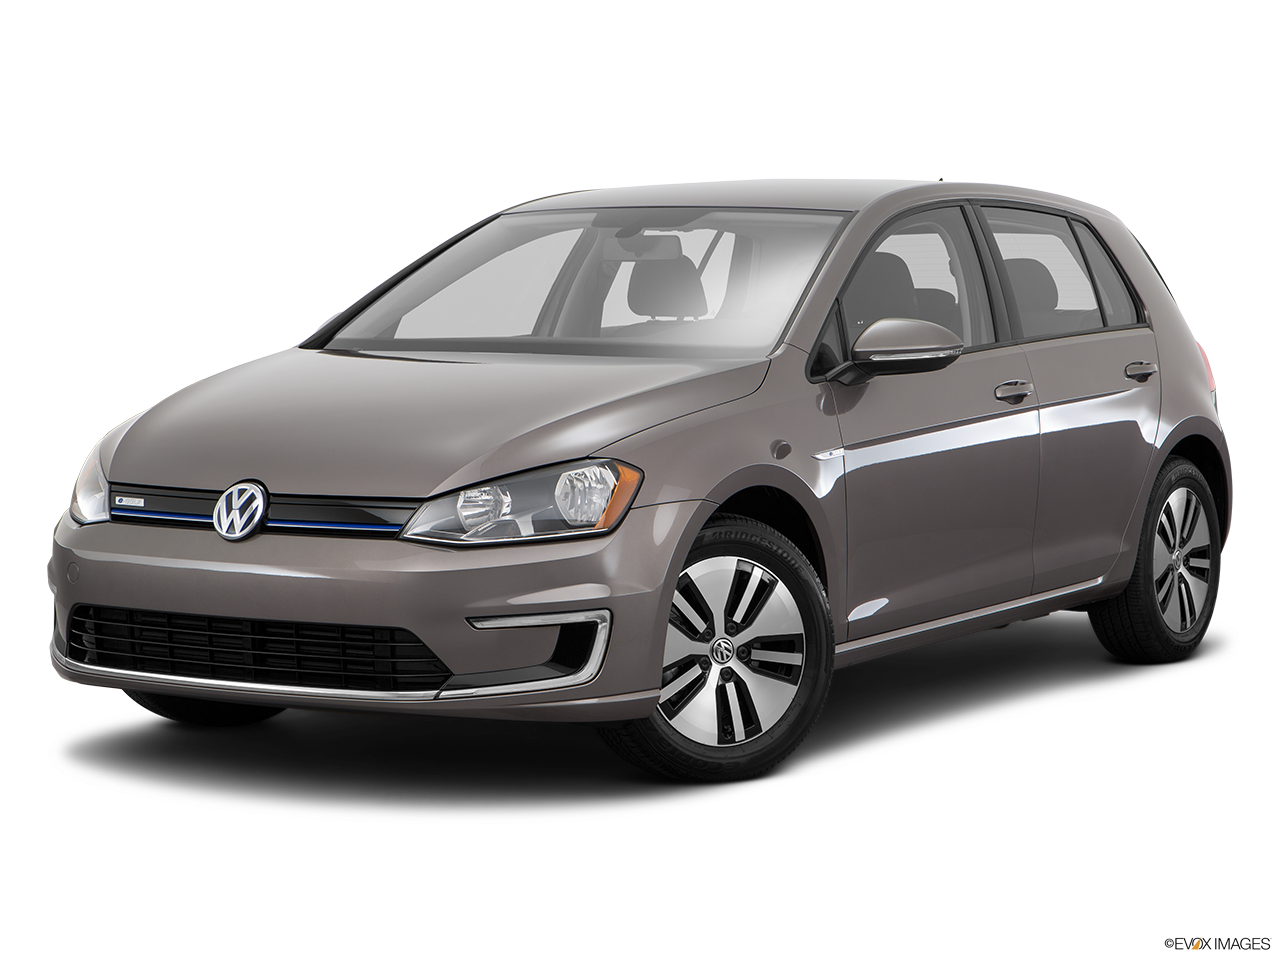 Test Drive A 2016 Volkswagen e-Golf at New Century Volkswagen in Los Angeles